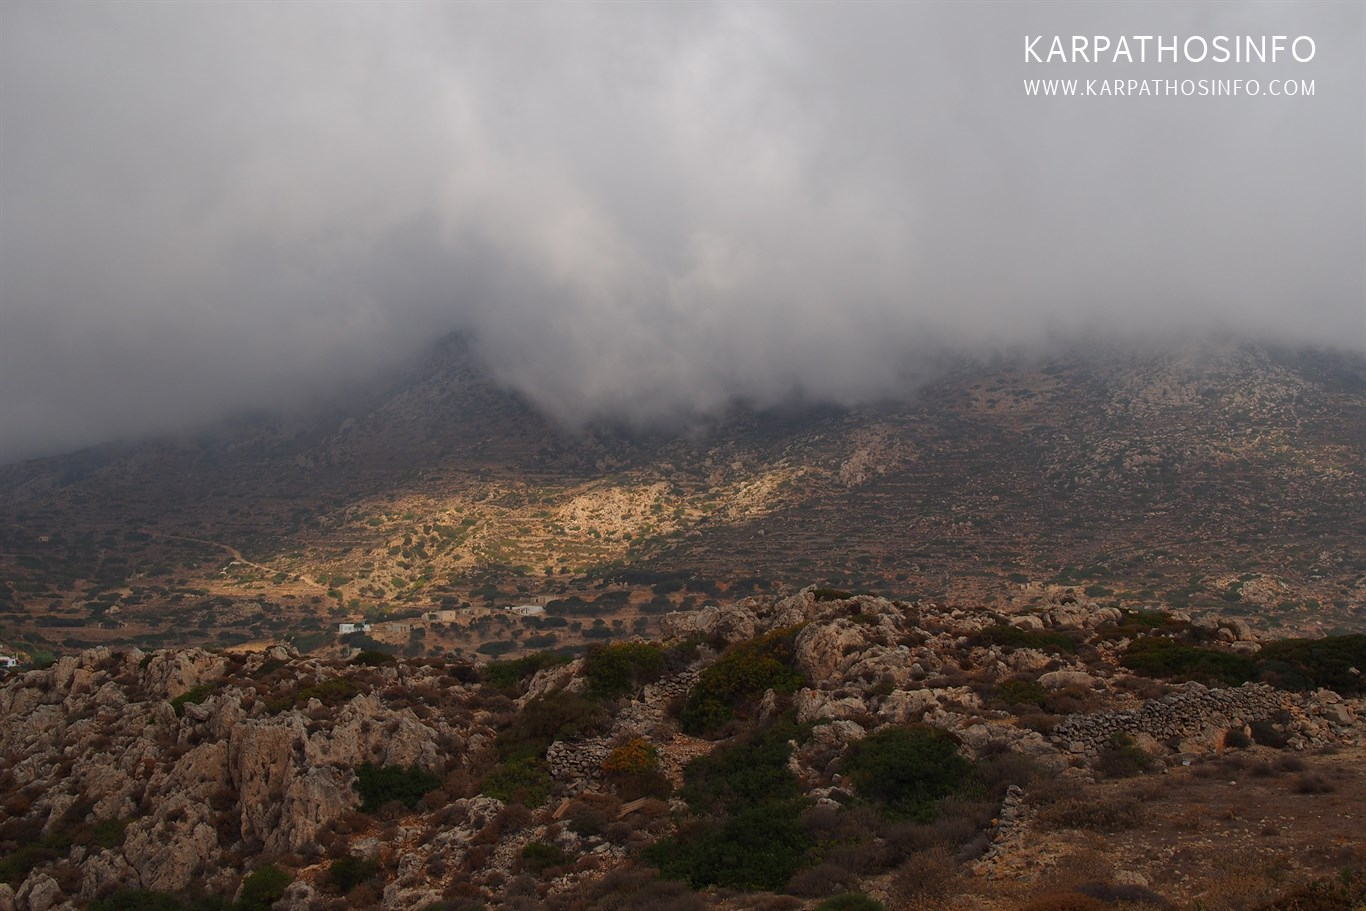 Karpathos winter